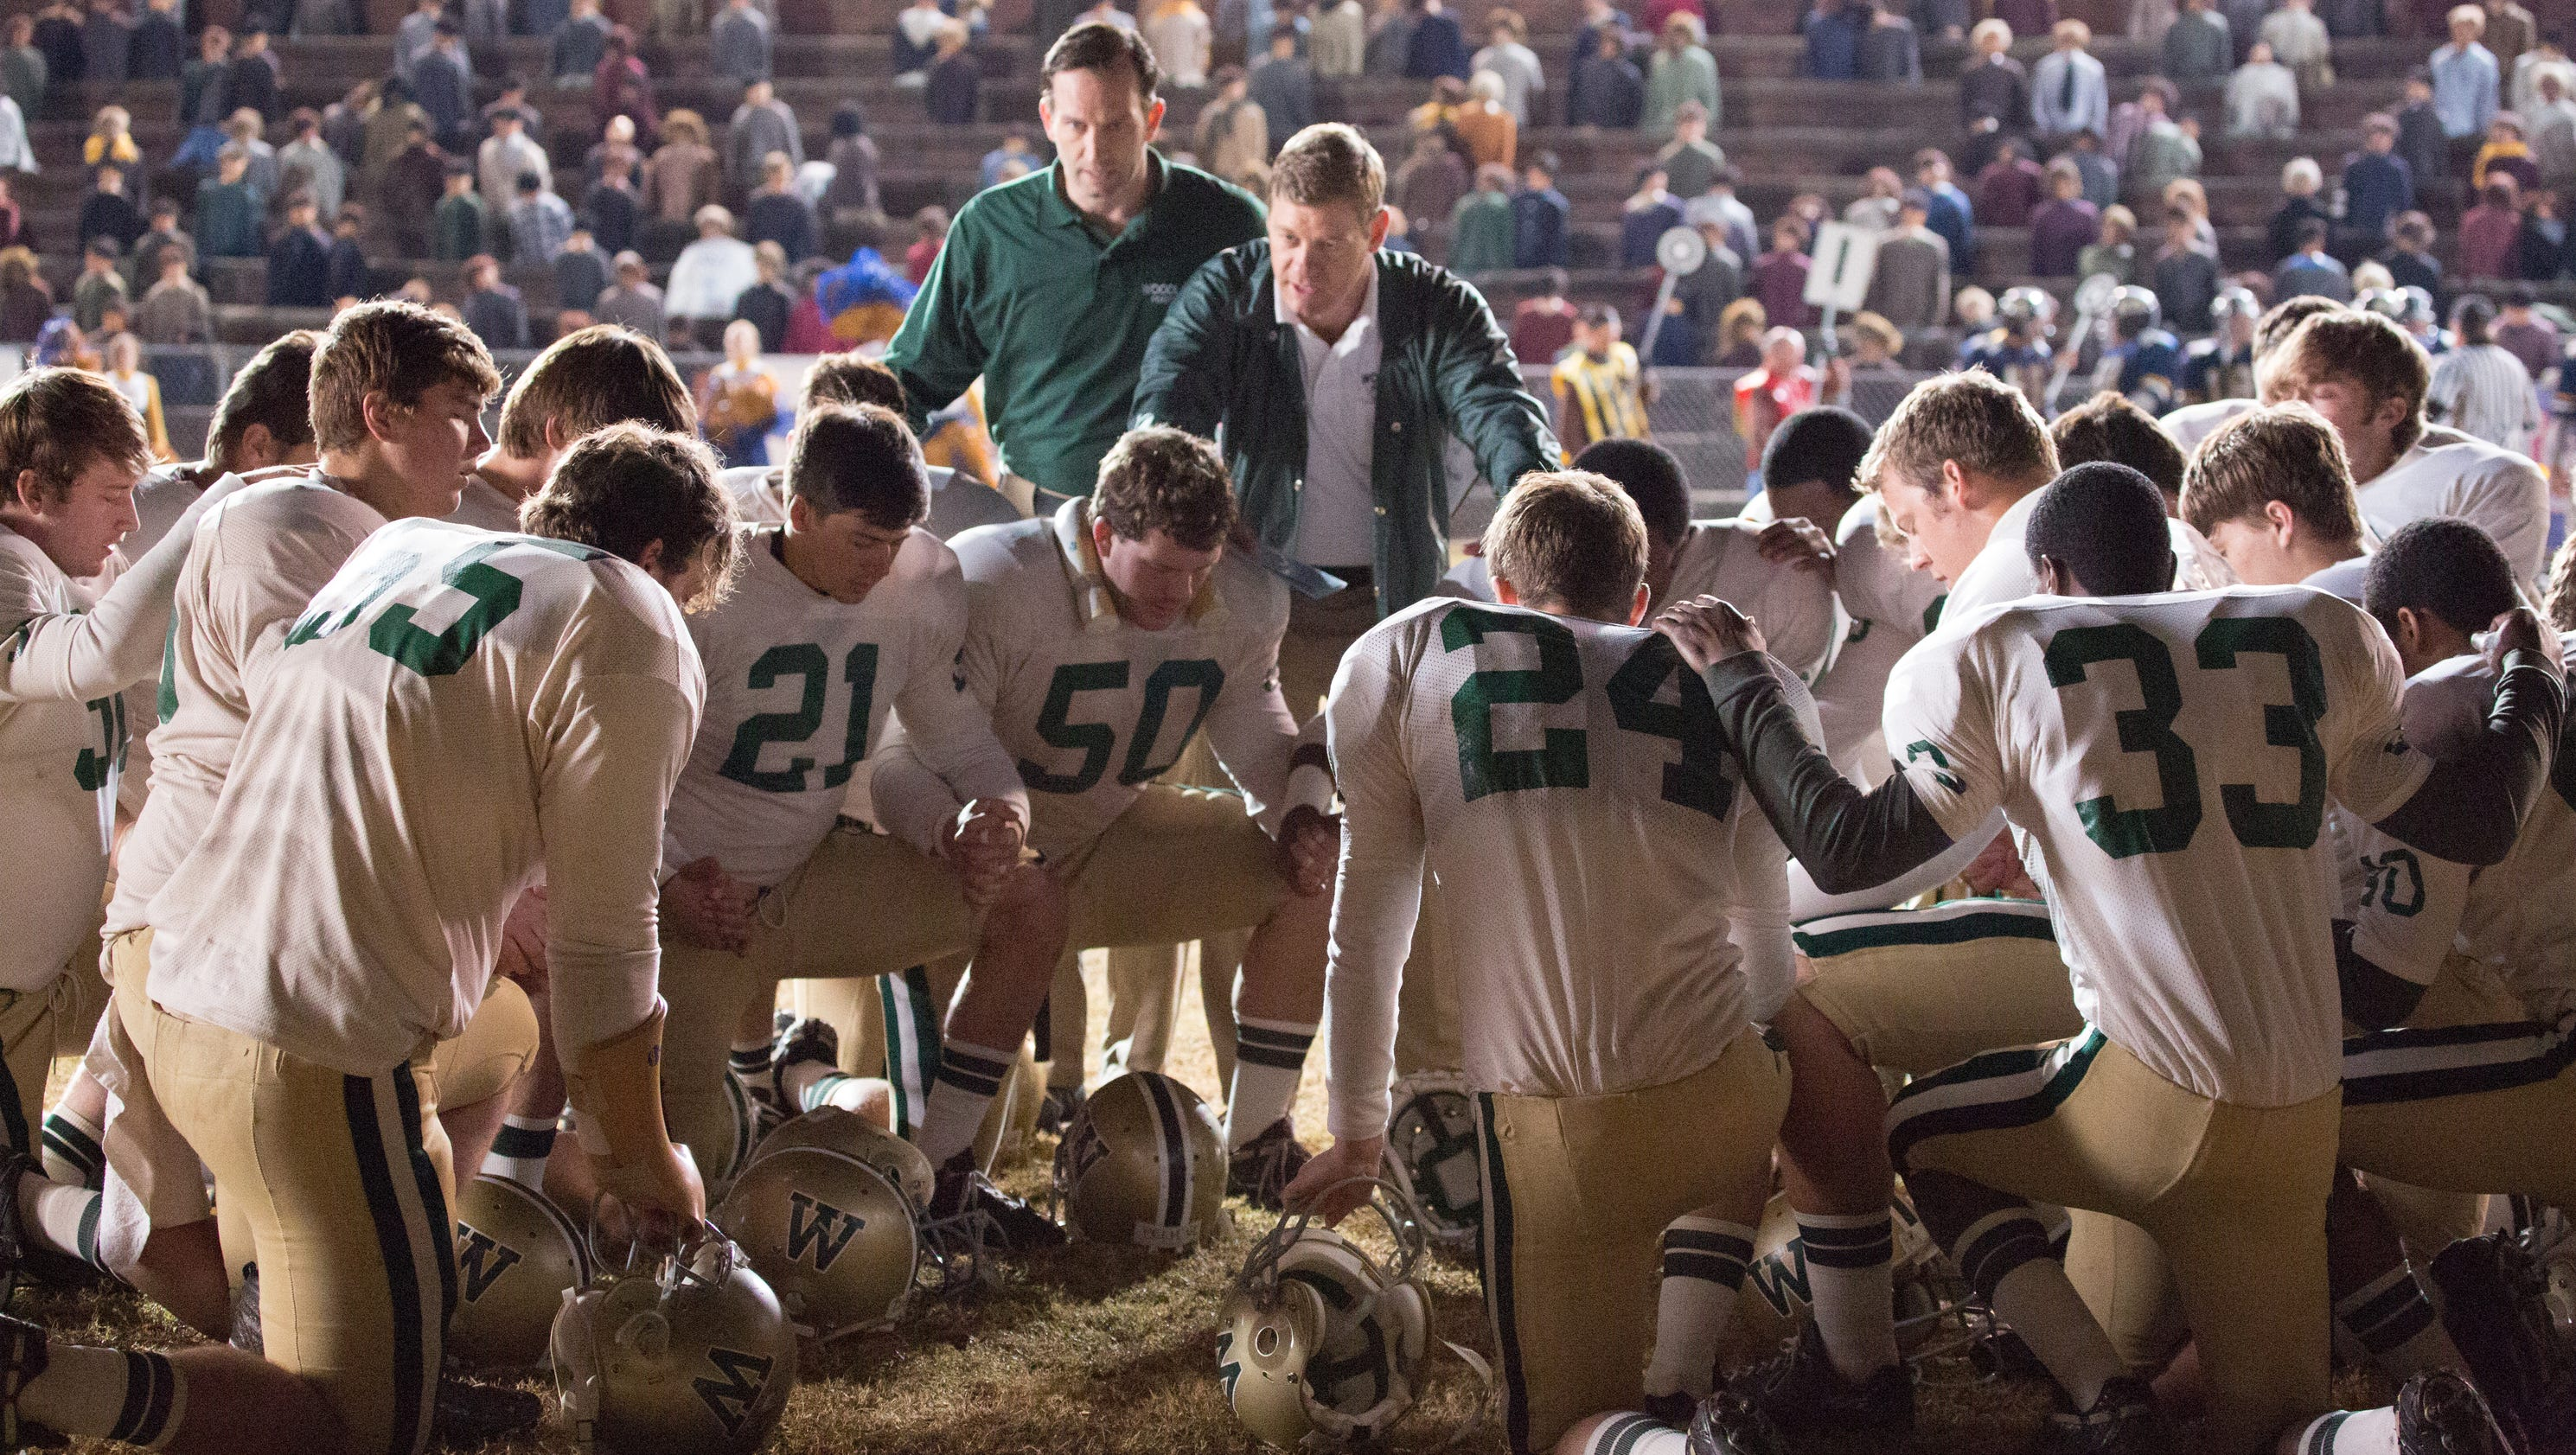 With Woodlawn Christian Films Enter New Playing Field